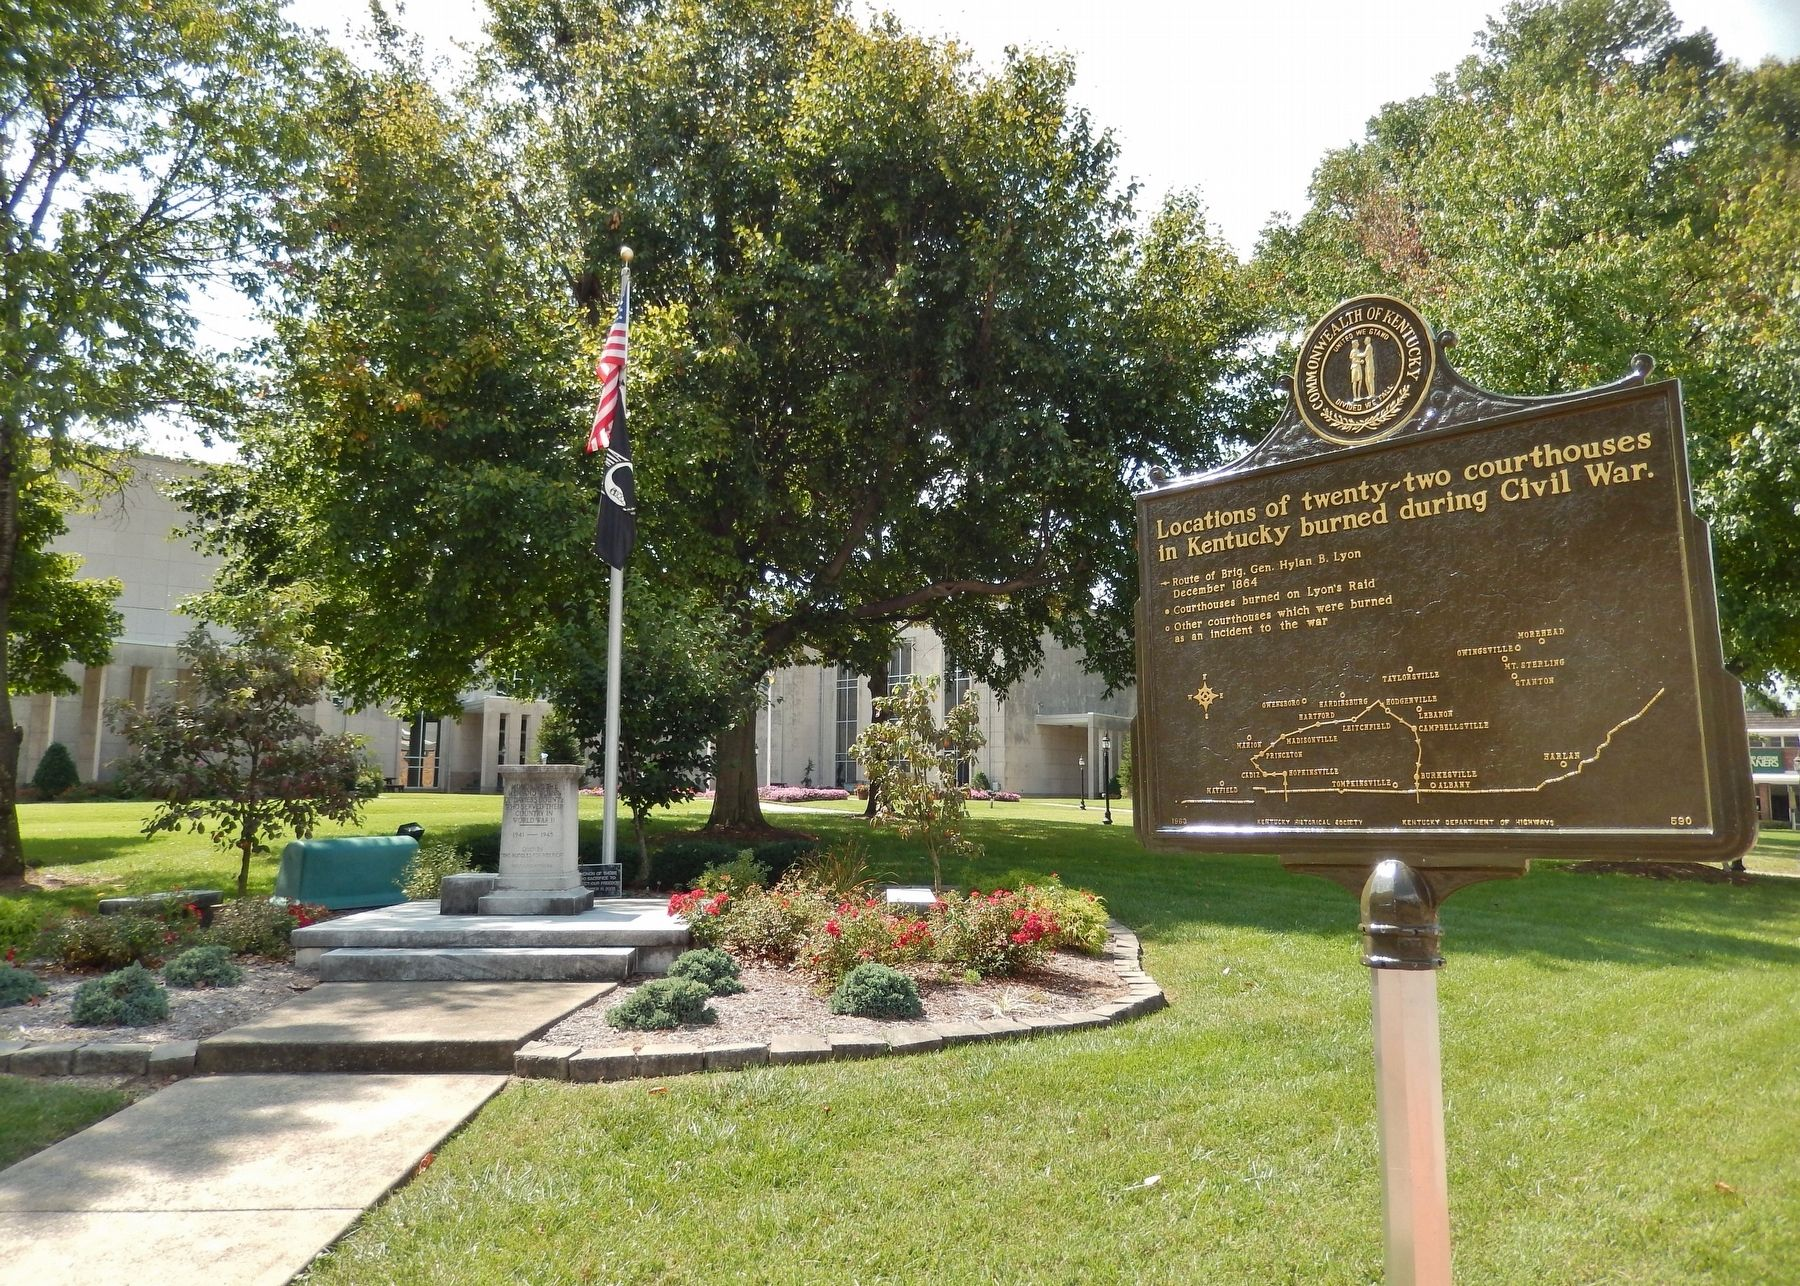 Courthouse Burned Marker (<i>side 2; wide view; Daviess County WWI Memorial in background</i>) image. Click for full size.